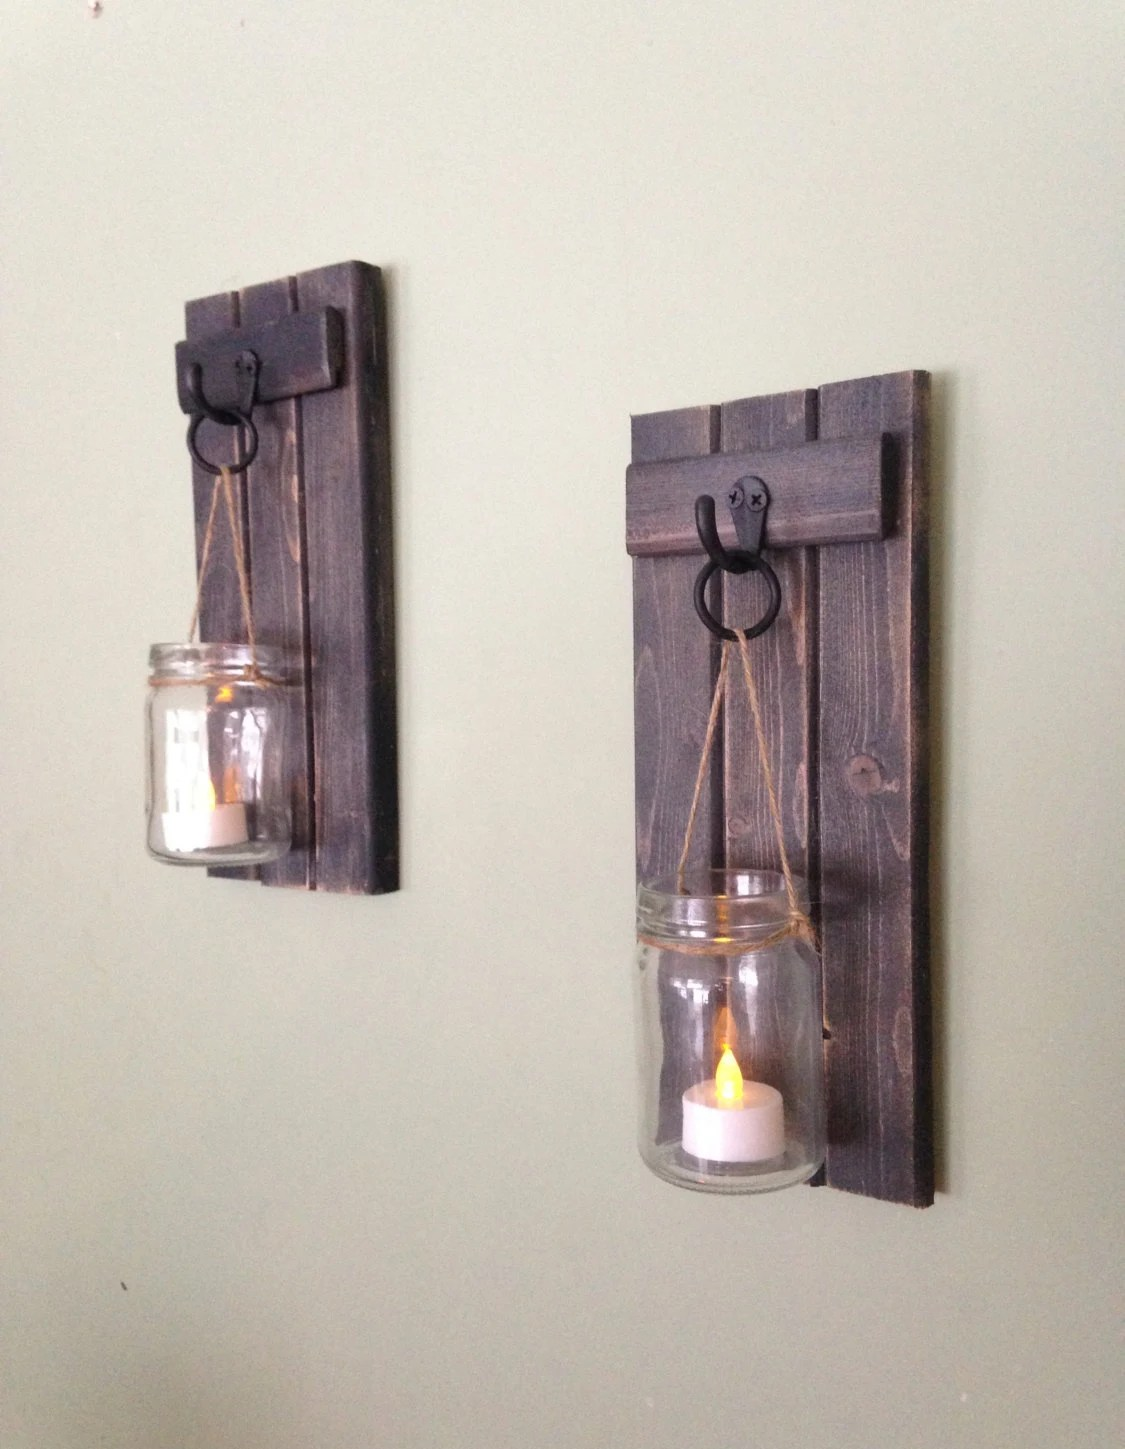 Kerzenhalter Für Wand Wooden Candle Holder Rustic Wall Sconce Mason Jar Candle